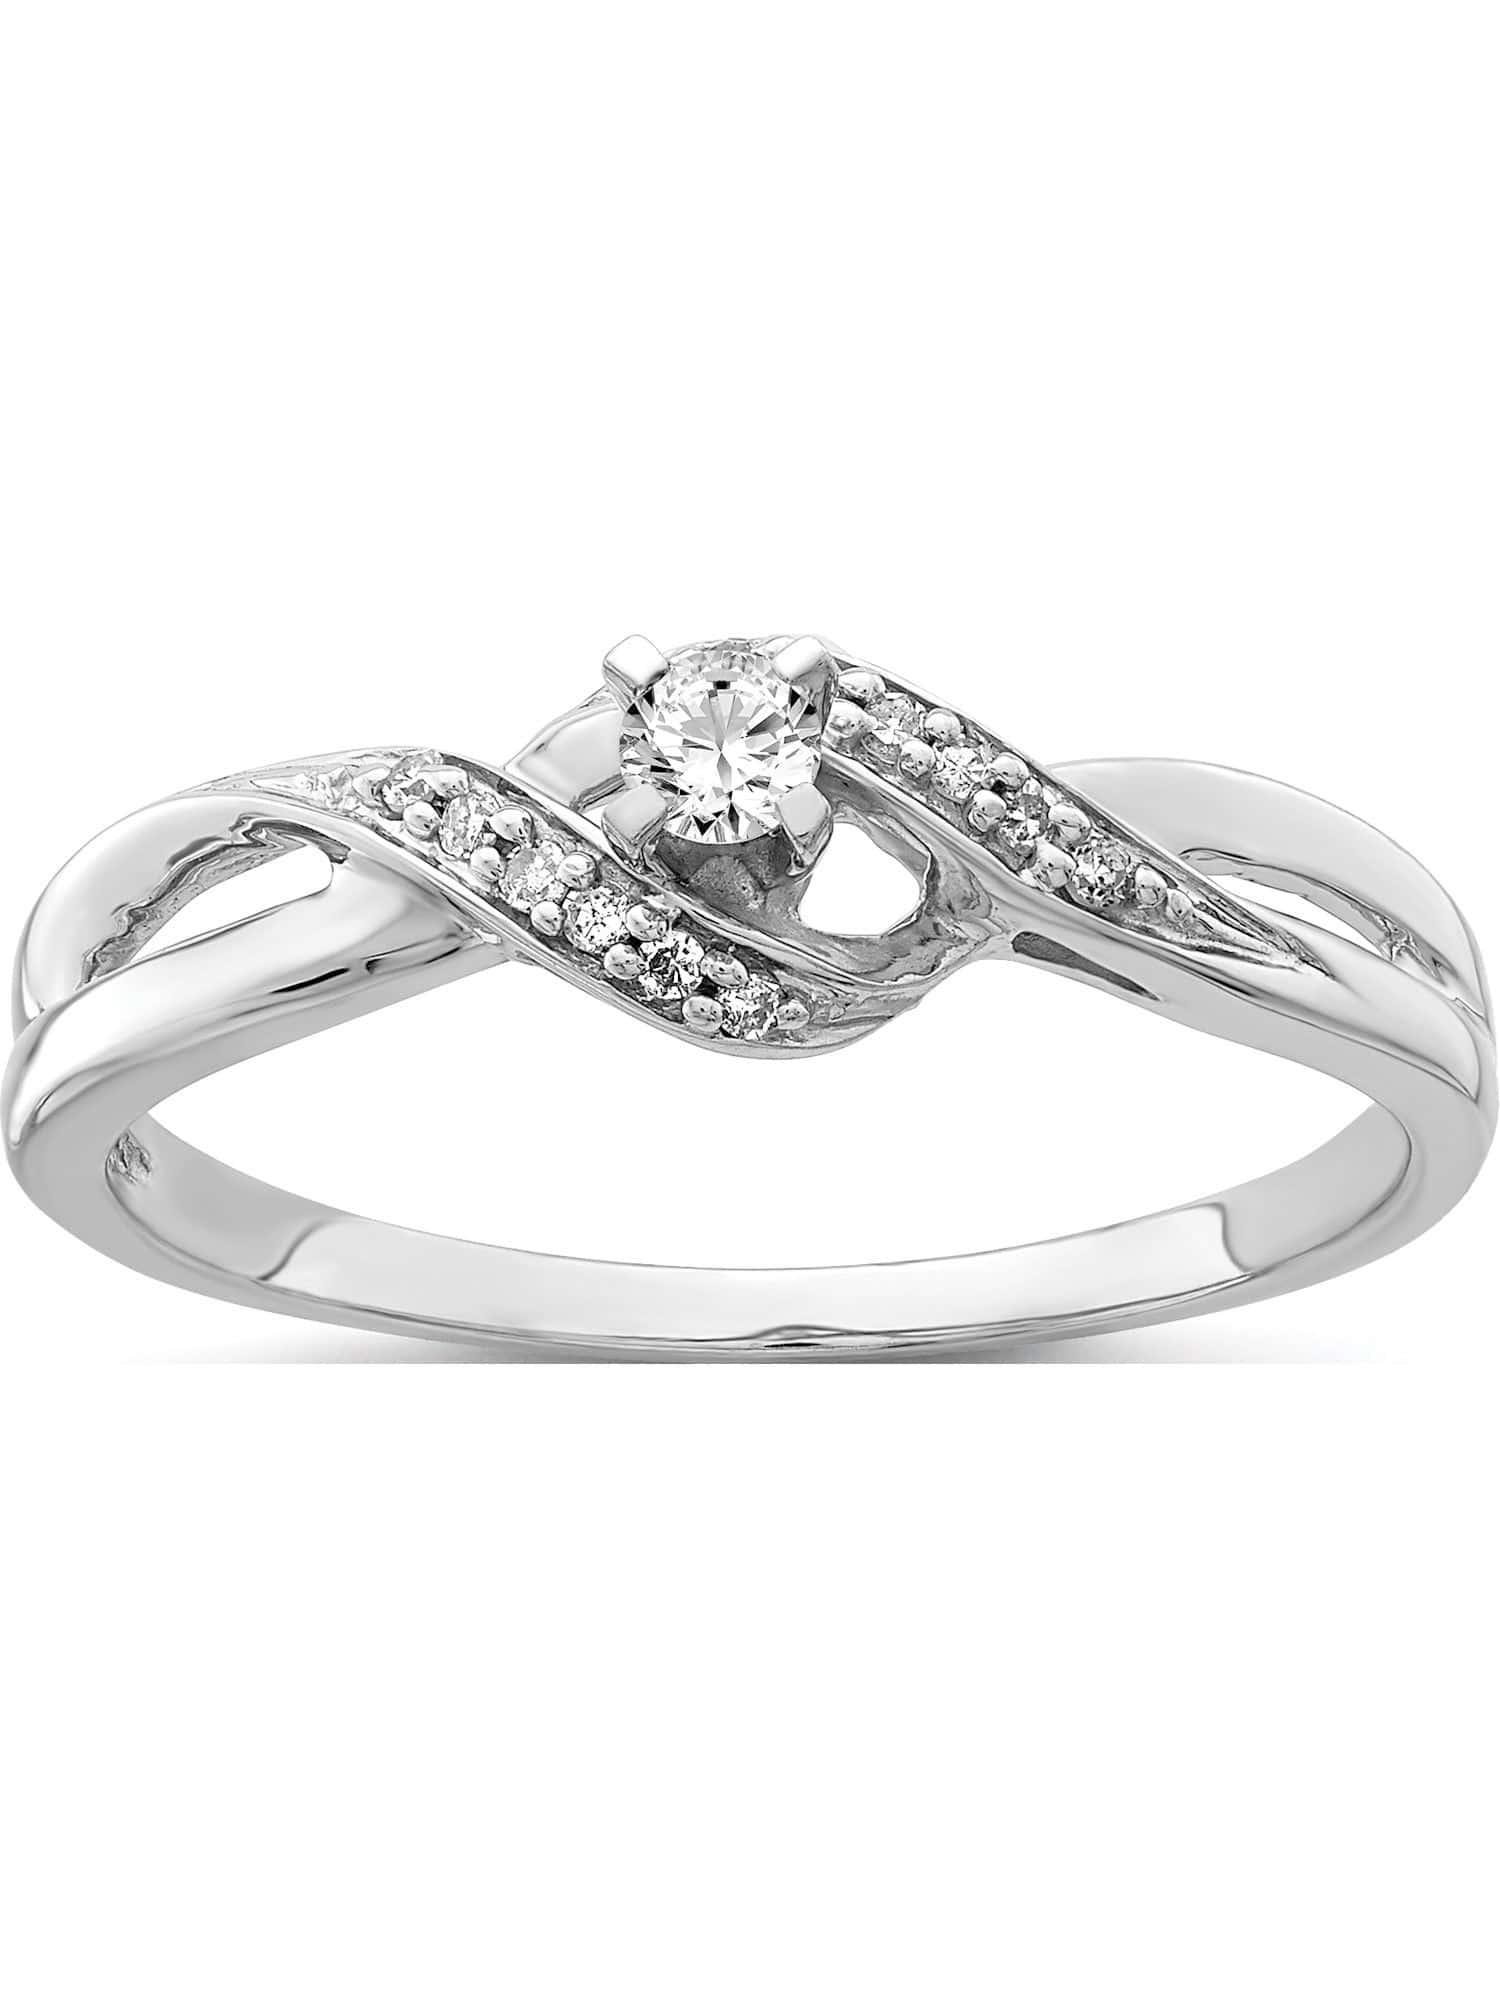 Know More About Promise Rings for Men & Women